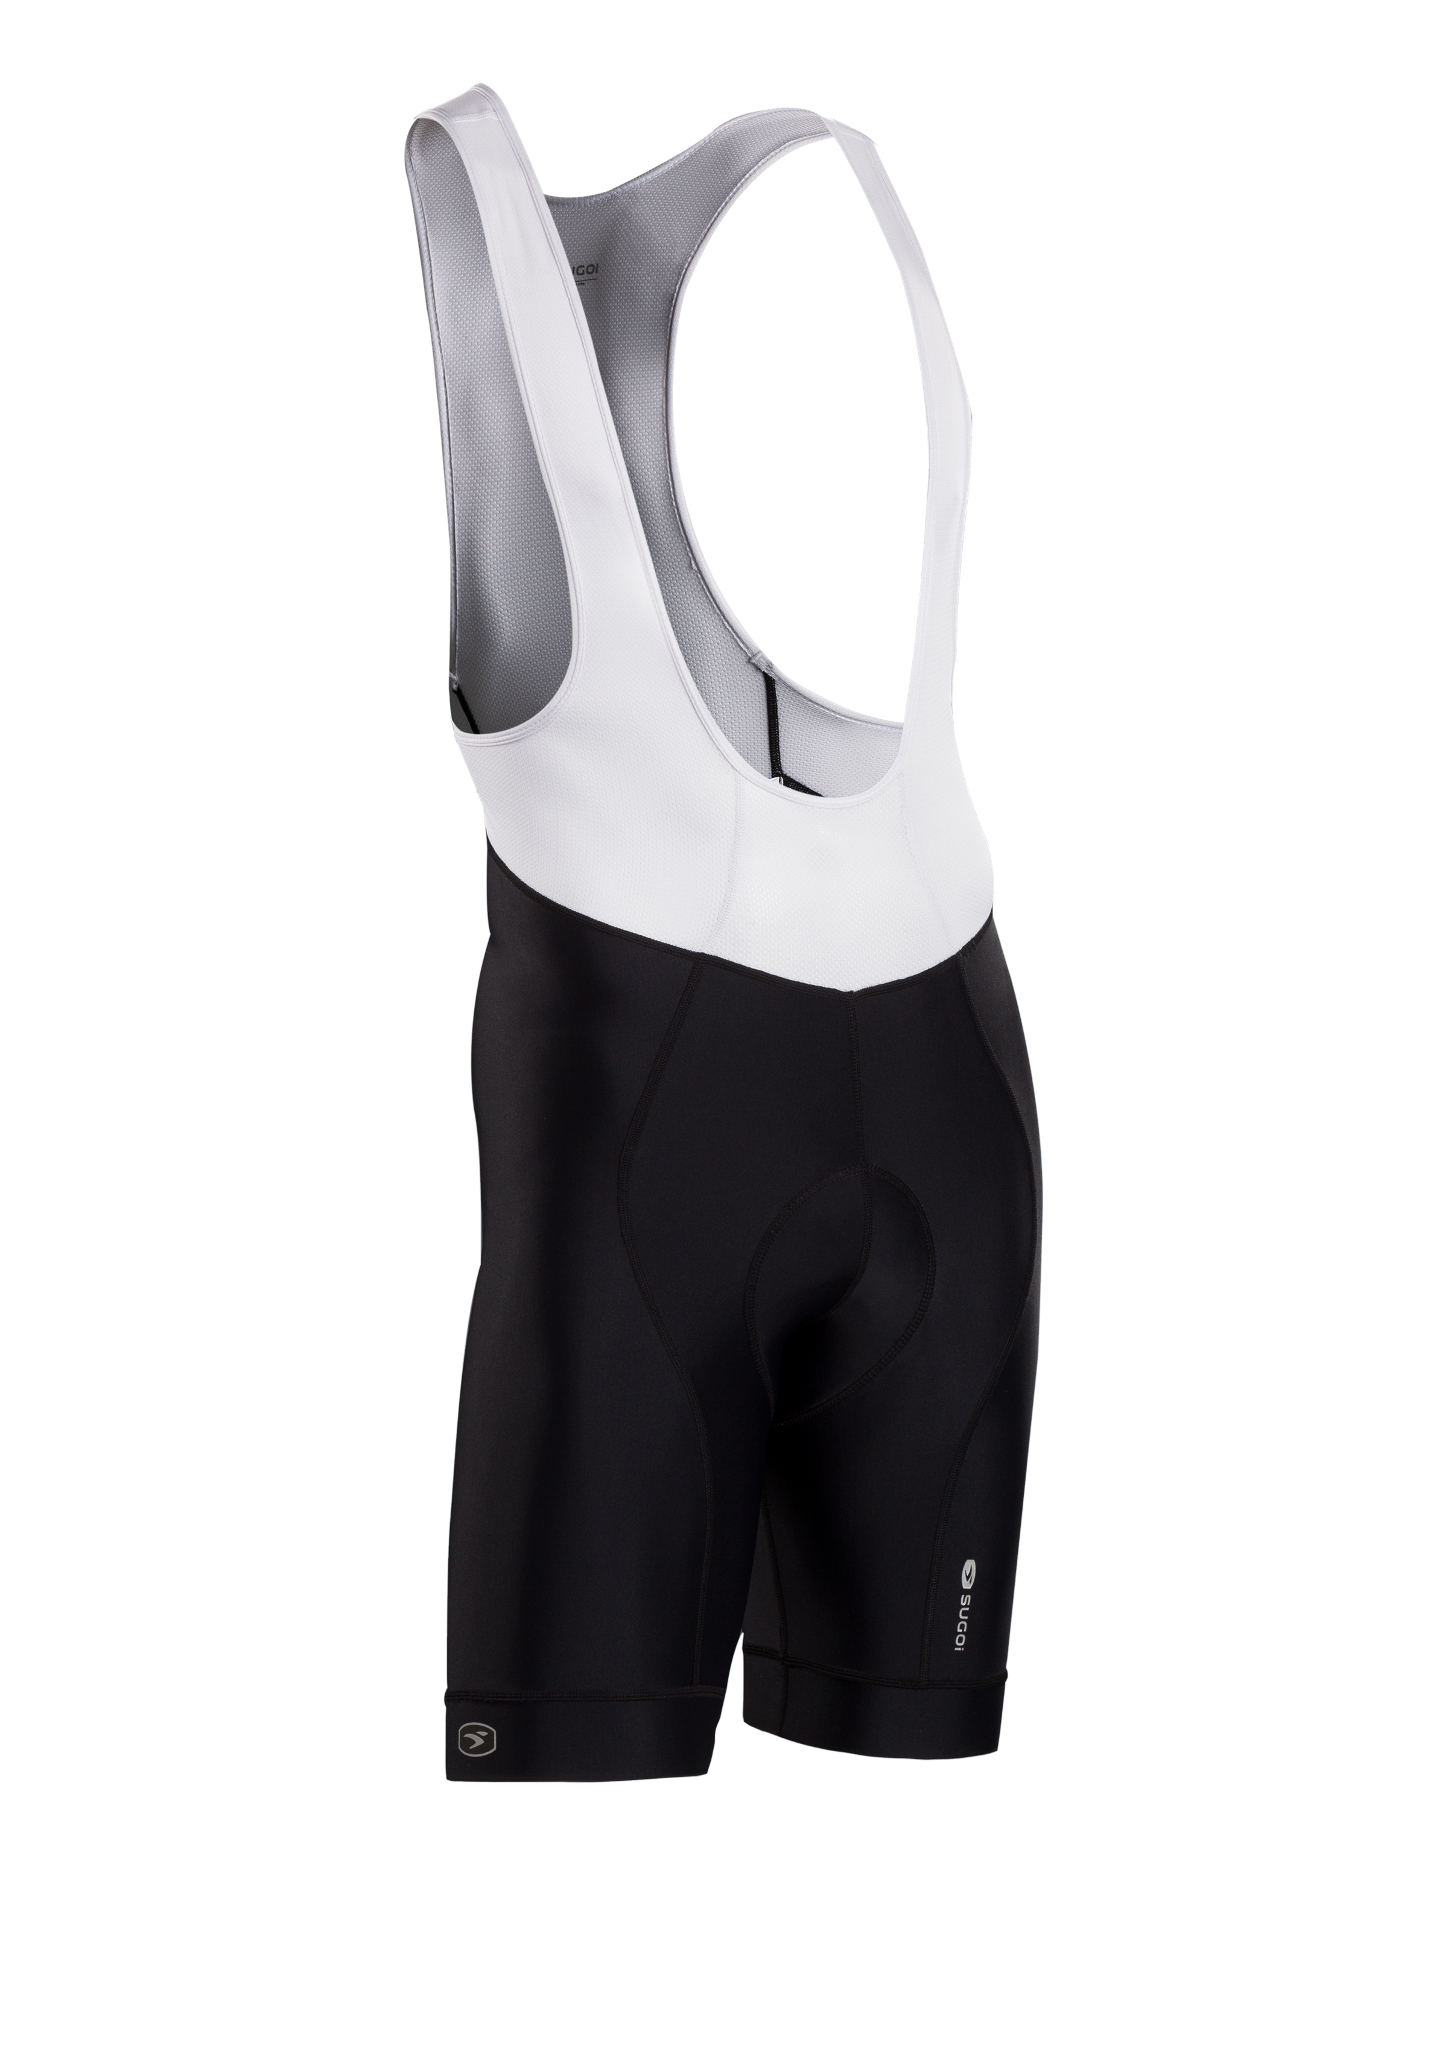 Sugoi Classic - Bib Shorts med pude - Sort | Trousers